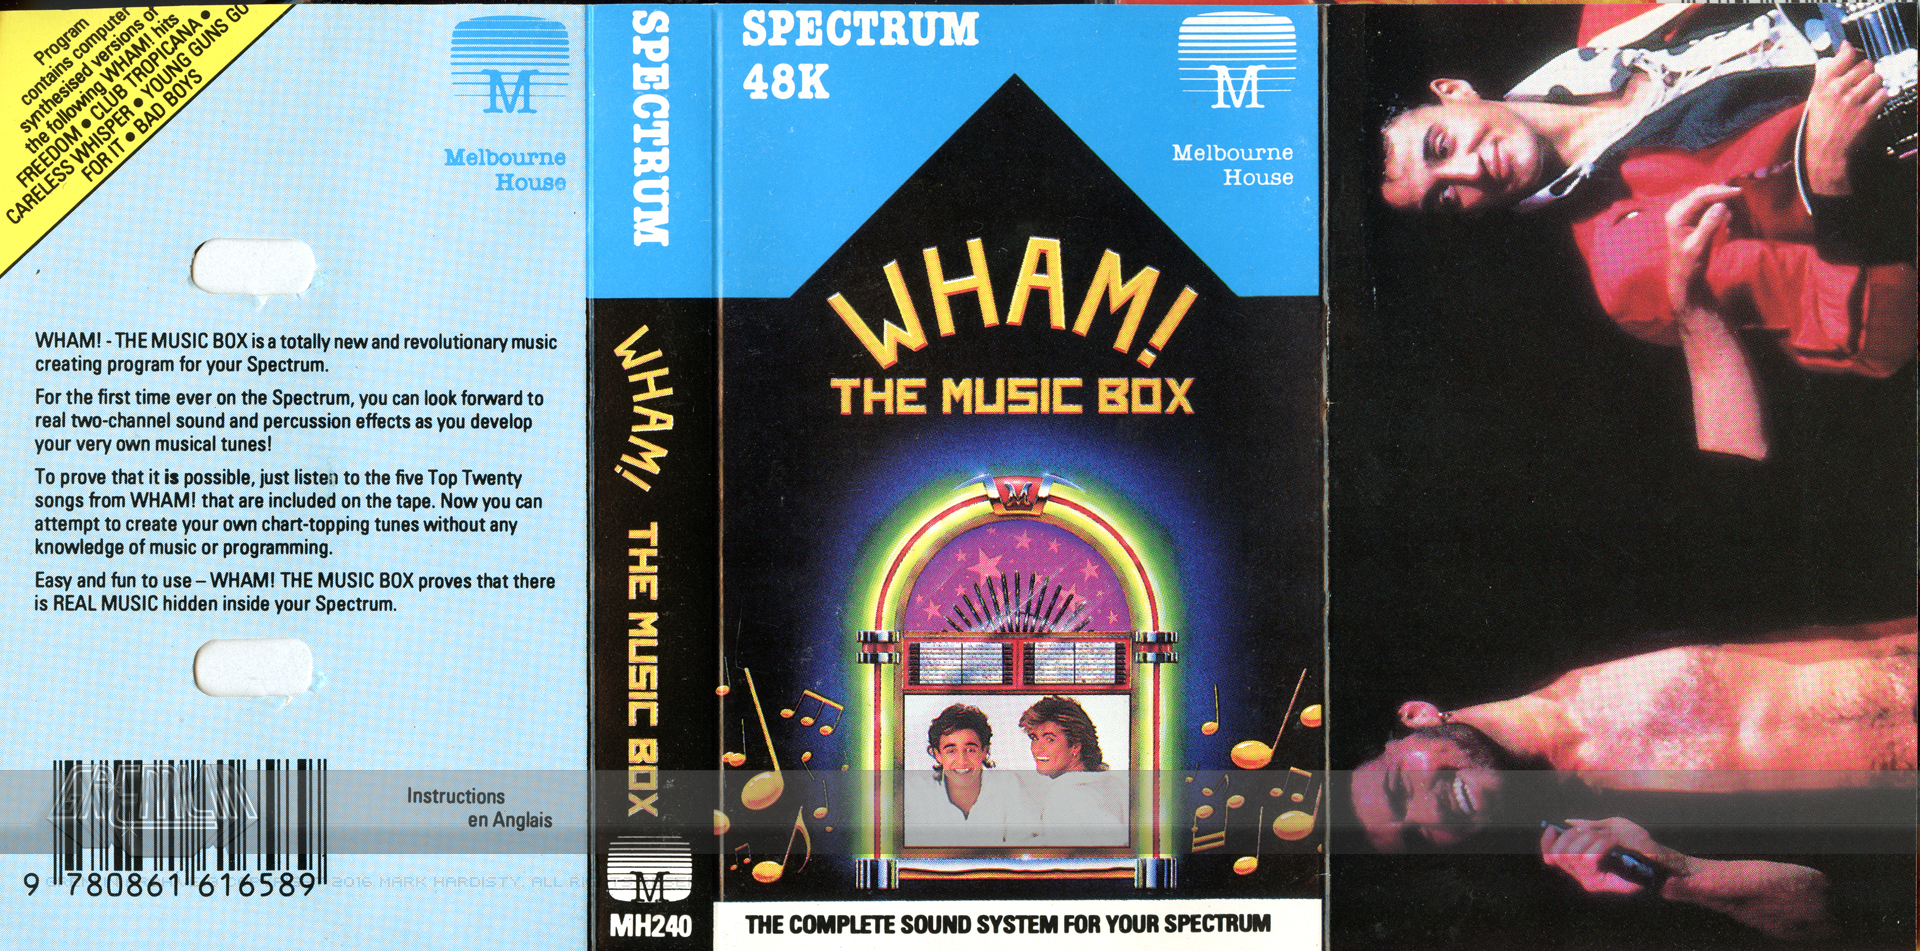 Wham! The Music Box